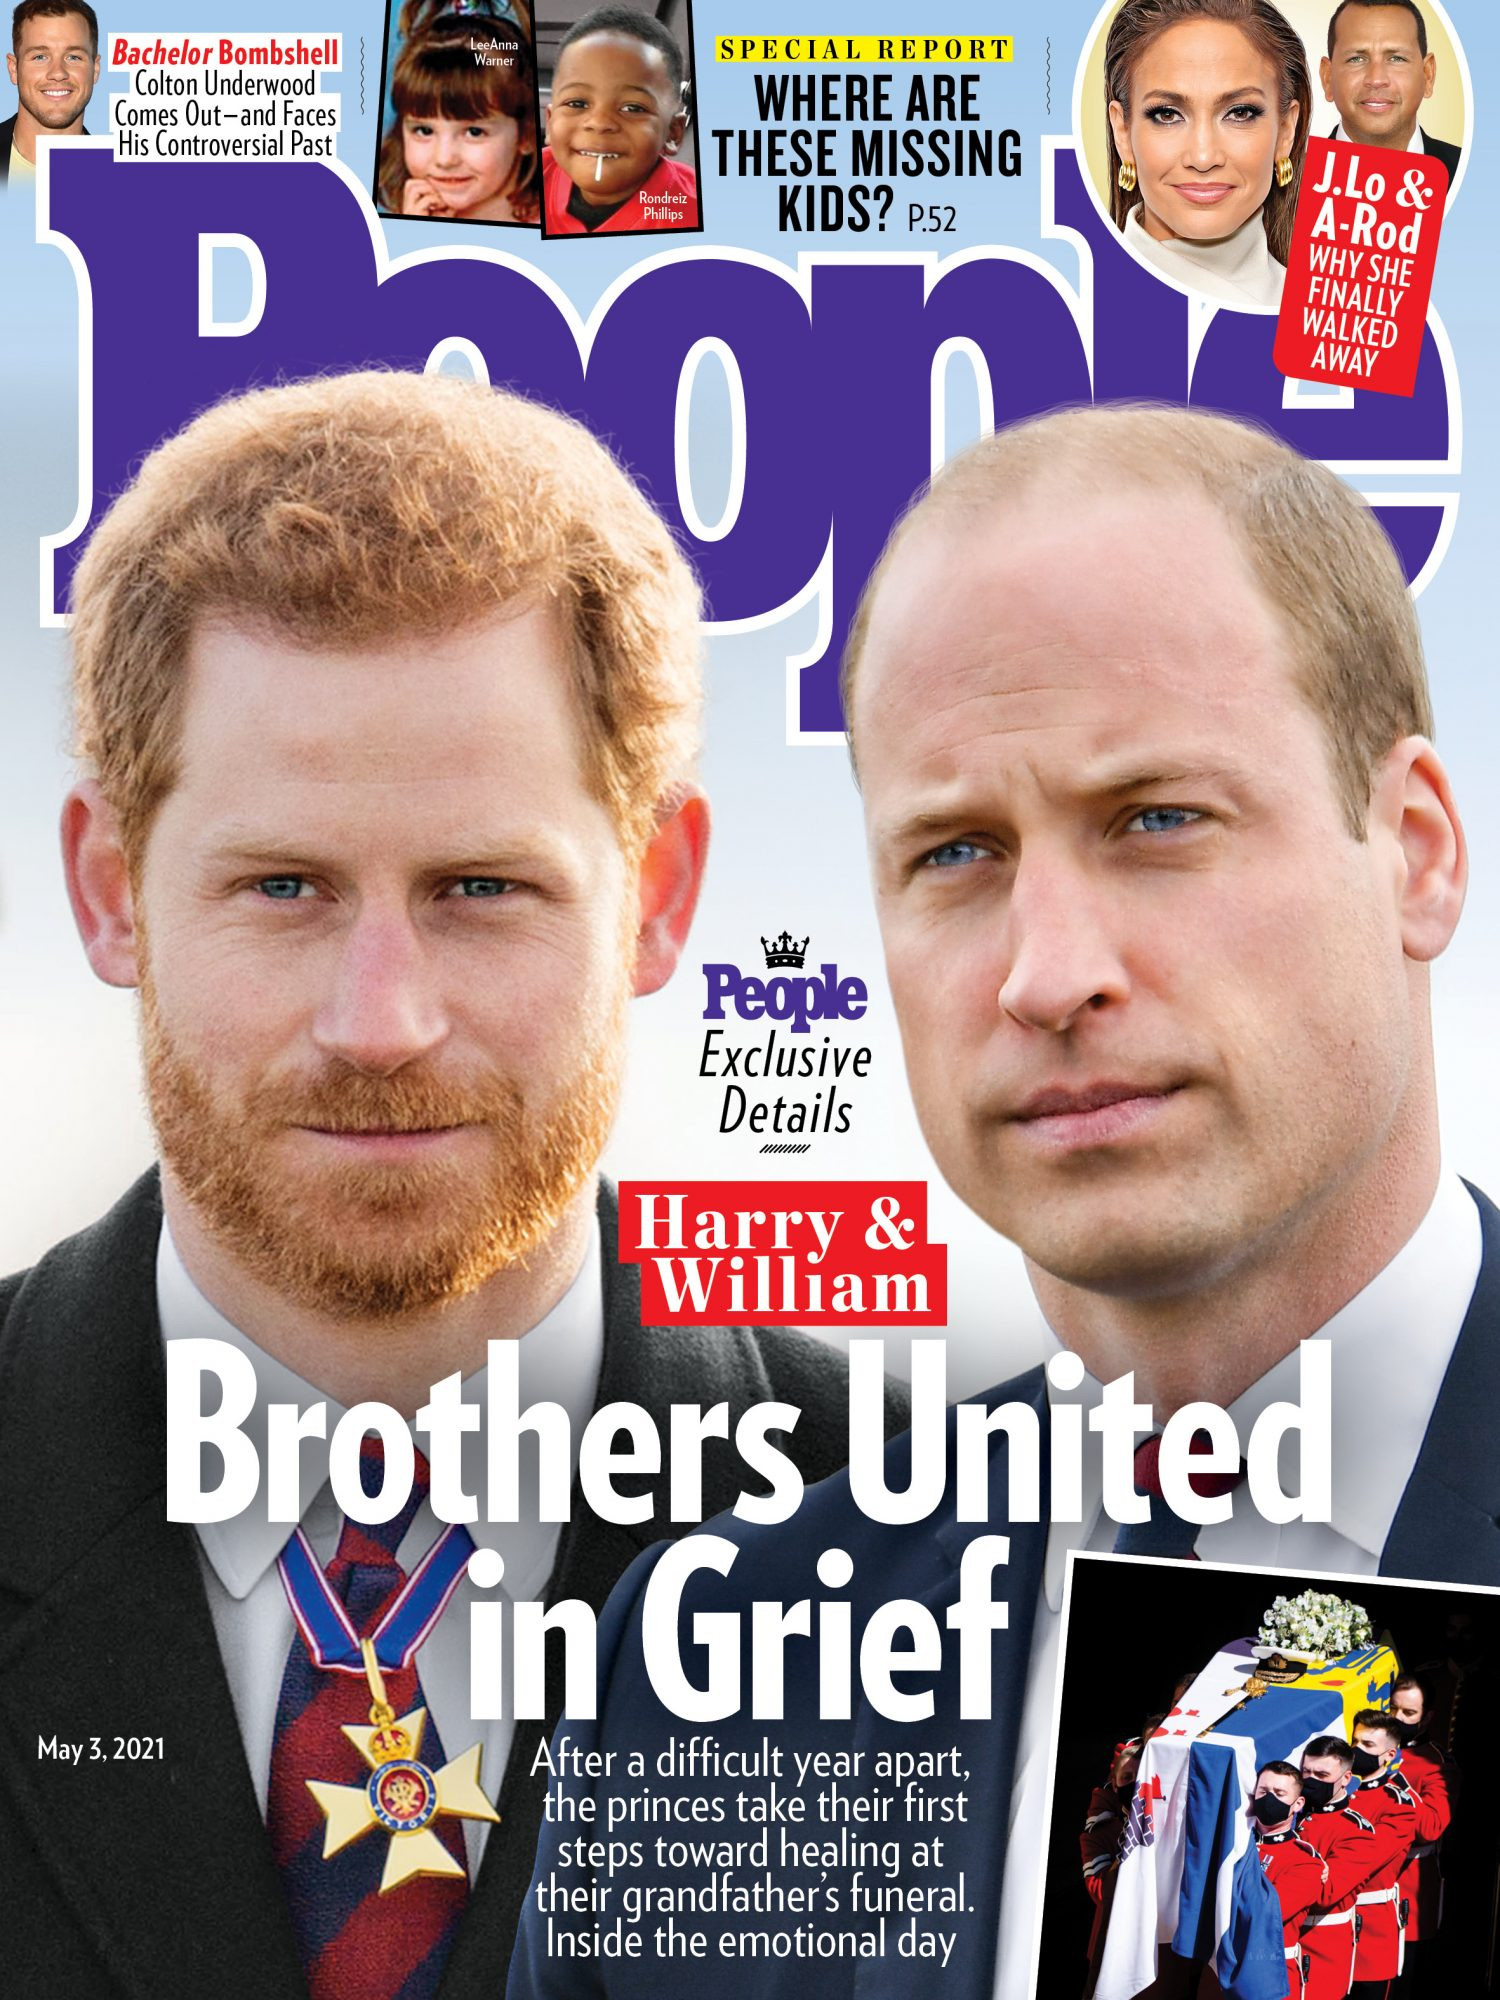 People Cover May 3, 2021